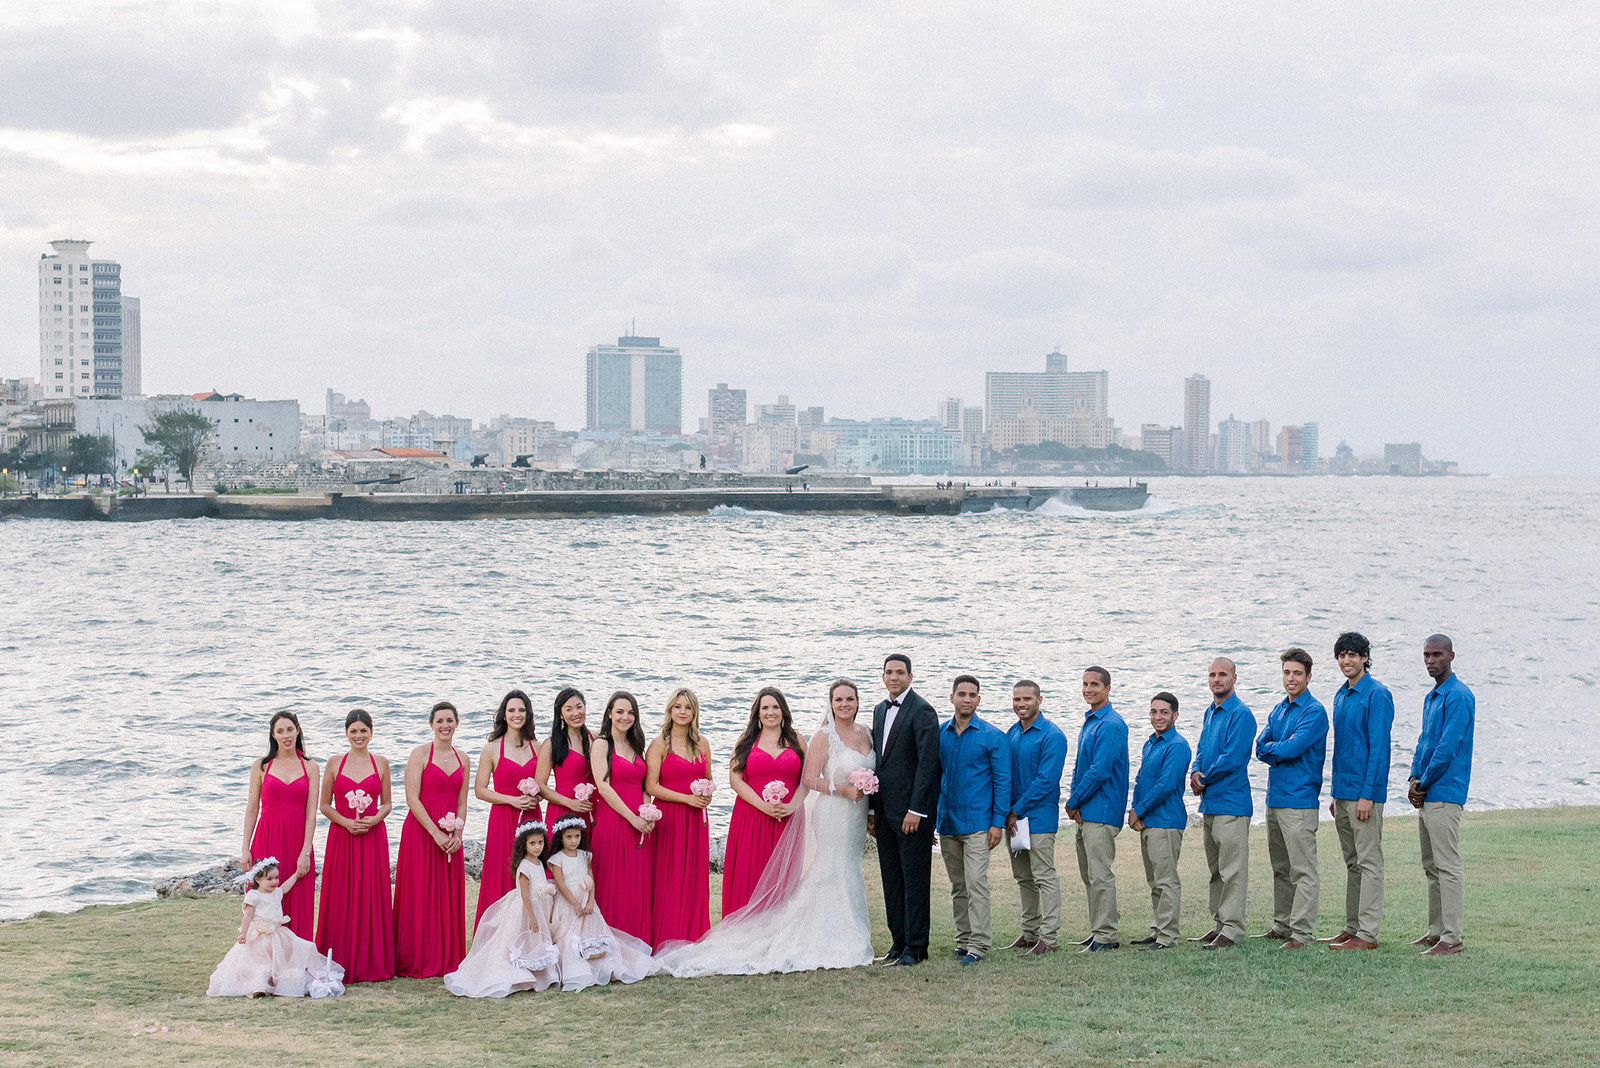 20150328-Pura-Soul-Photo-Cuba-Wedding-73